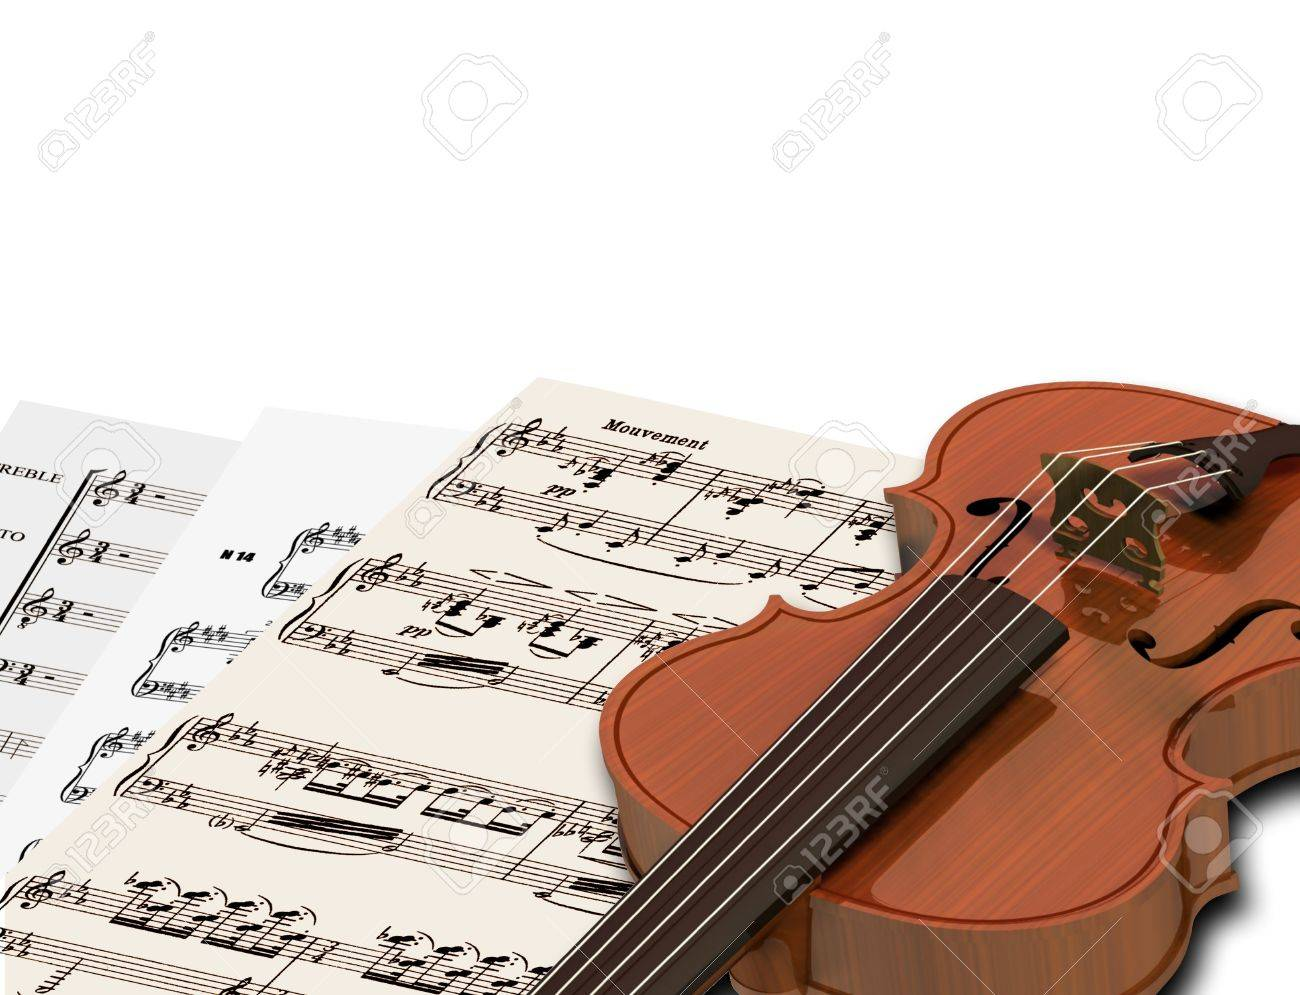 image of music sheets and notes with violin stock photo picture